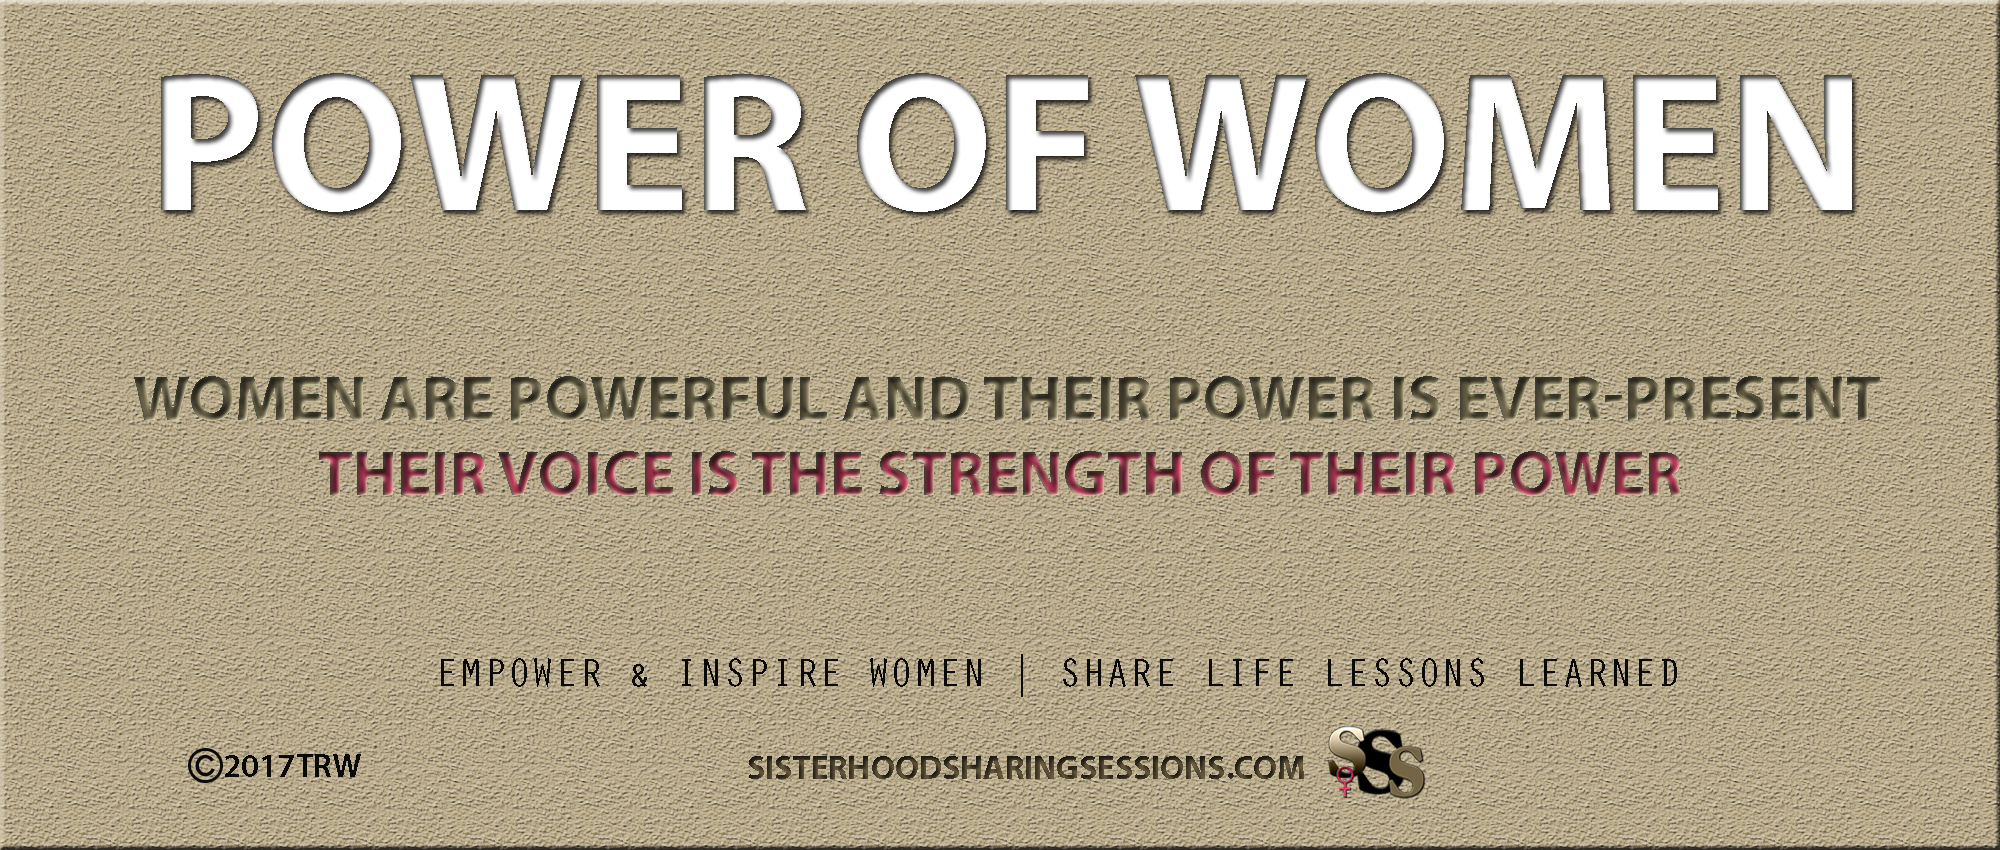 Power Of Women